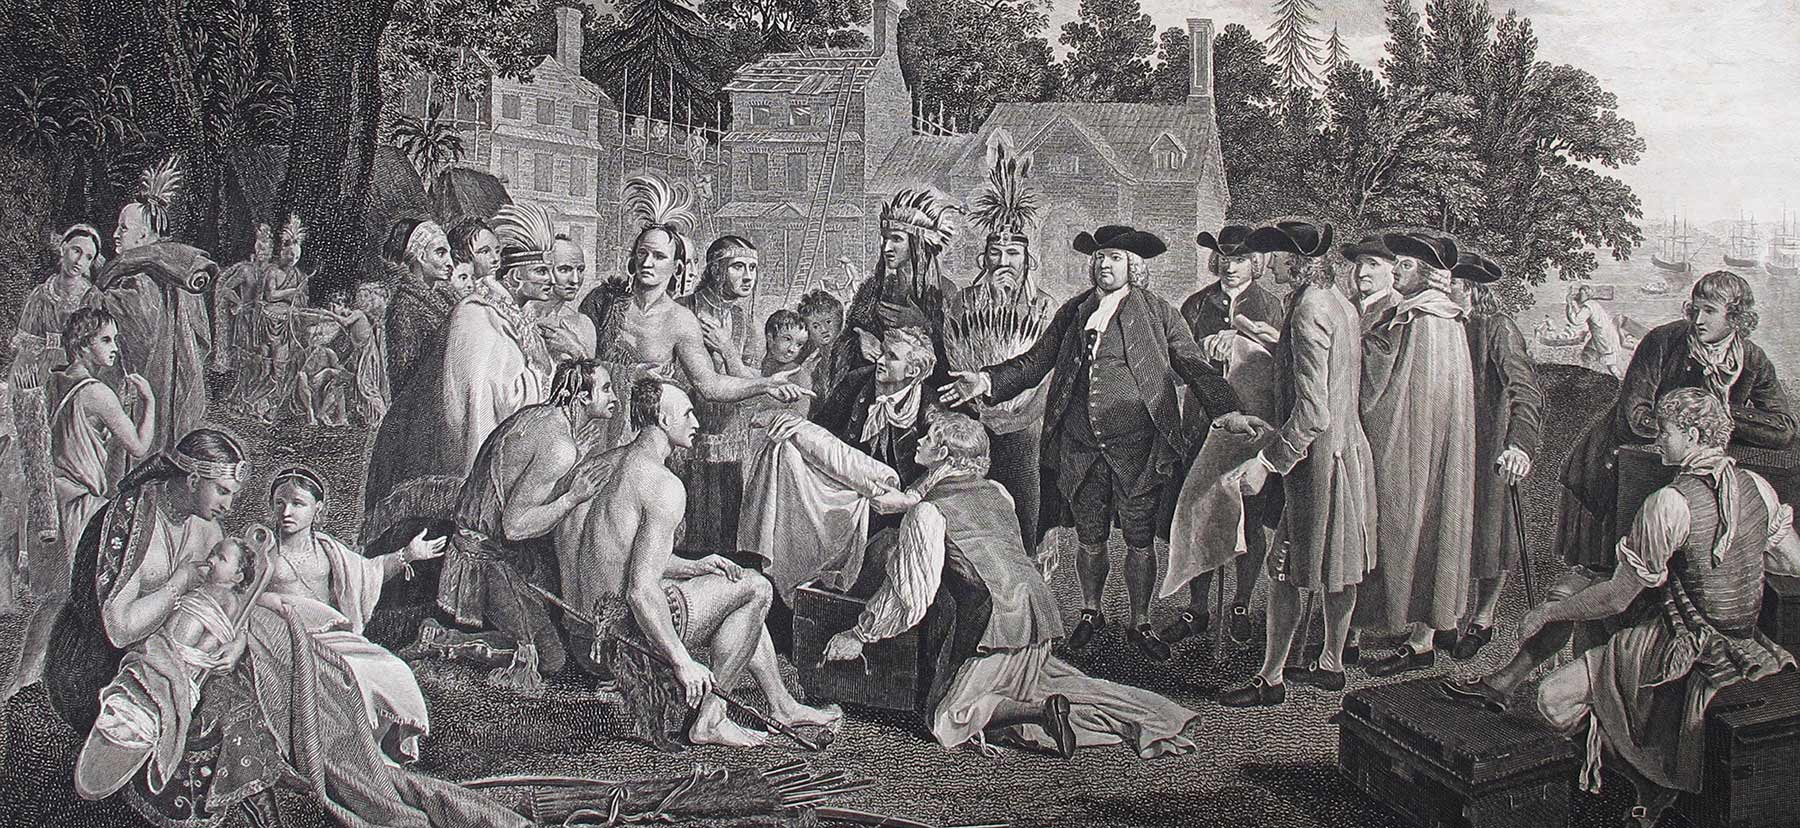 Drawing of Penn and native Americans meeting under the Penn Treaty Elm